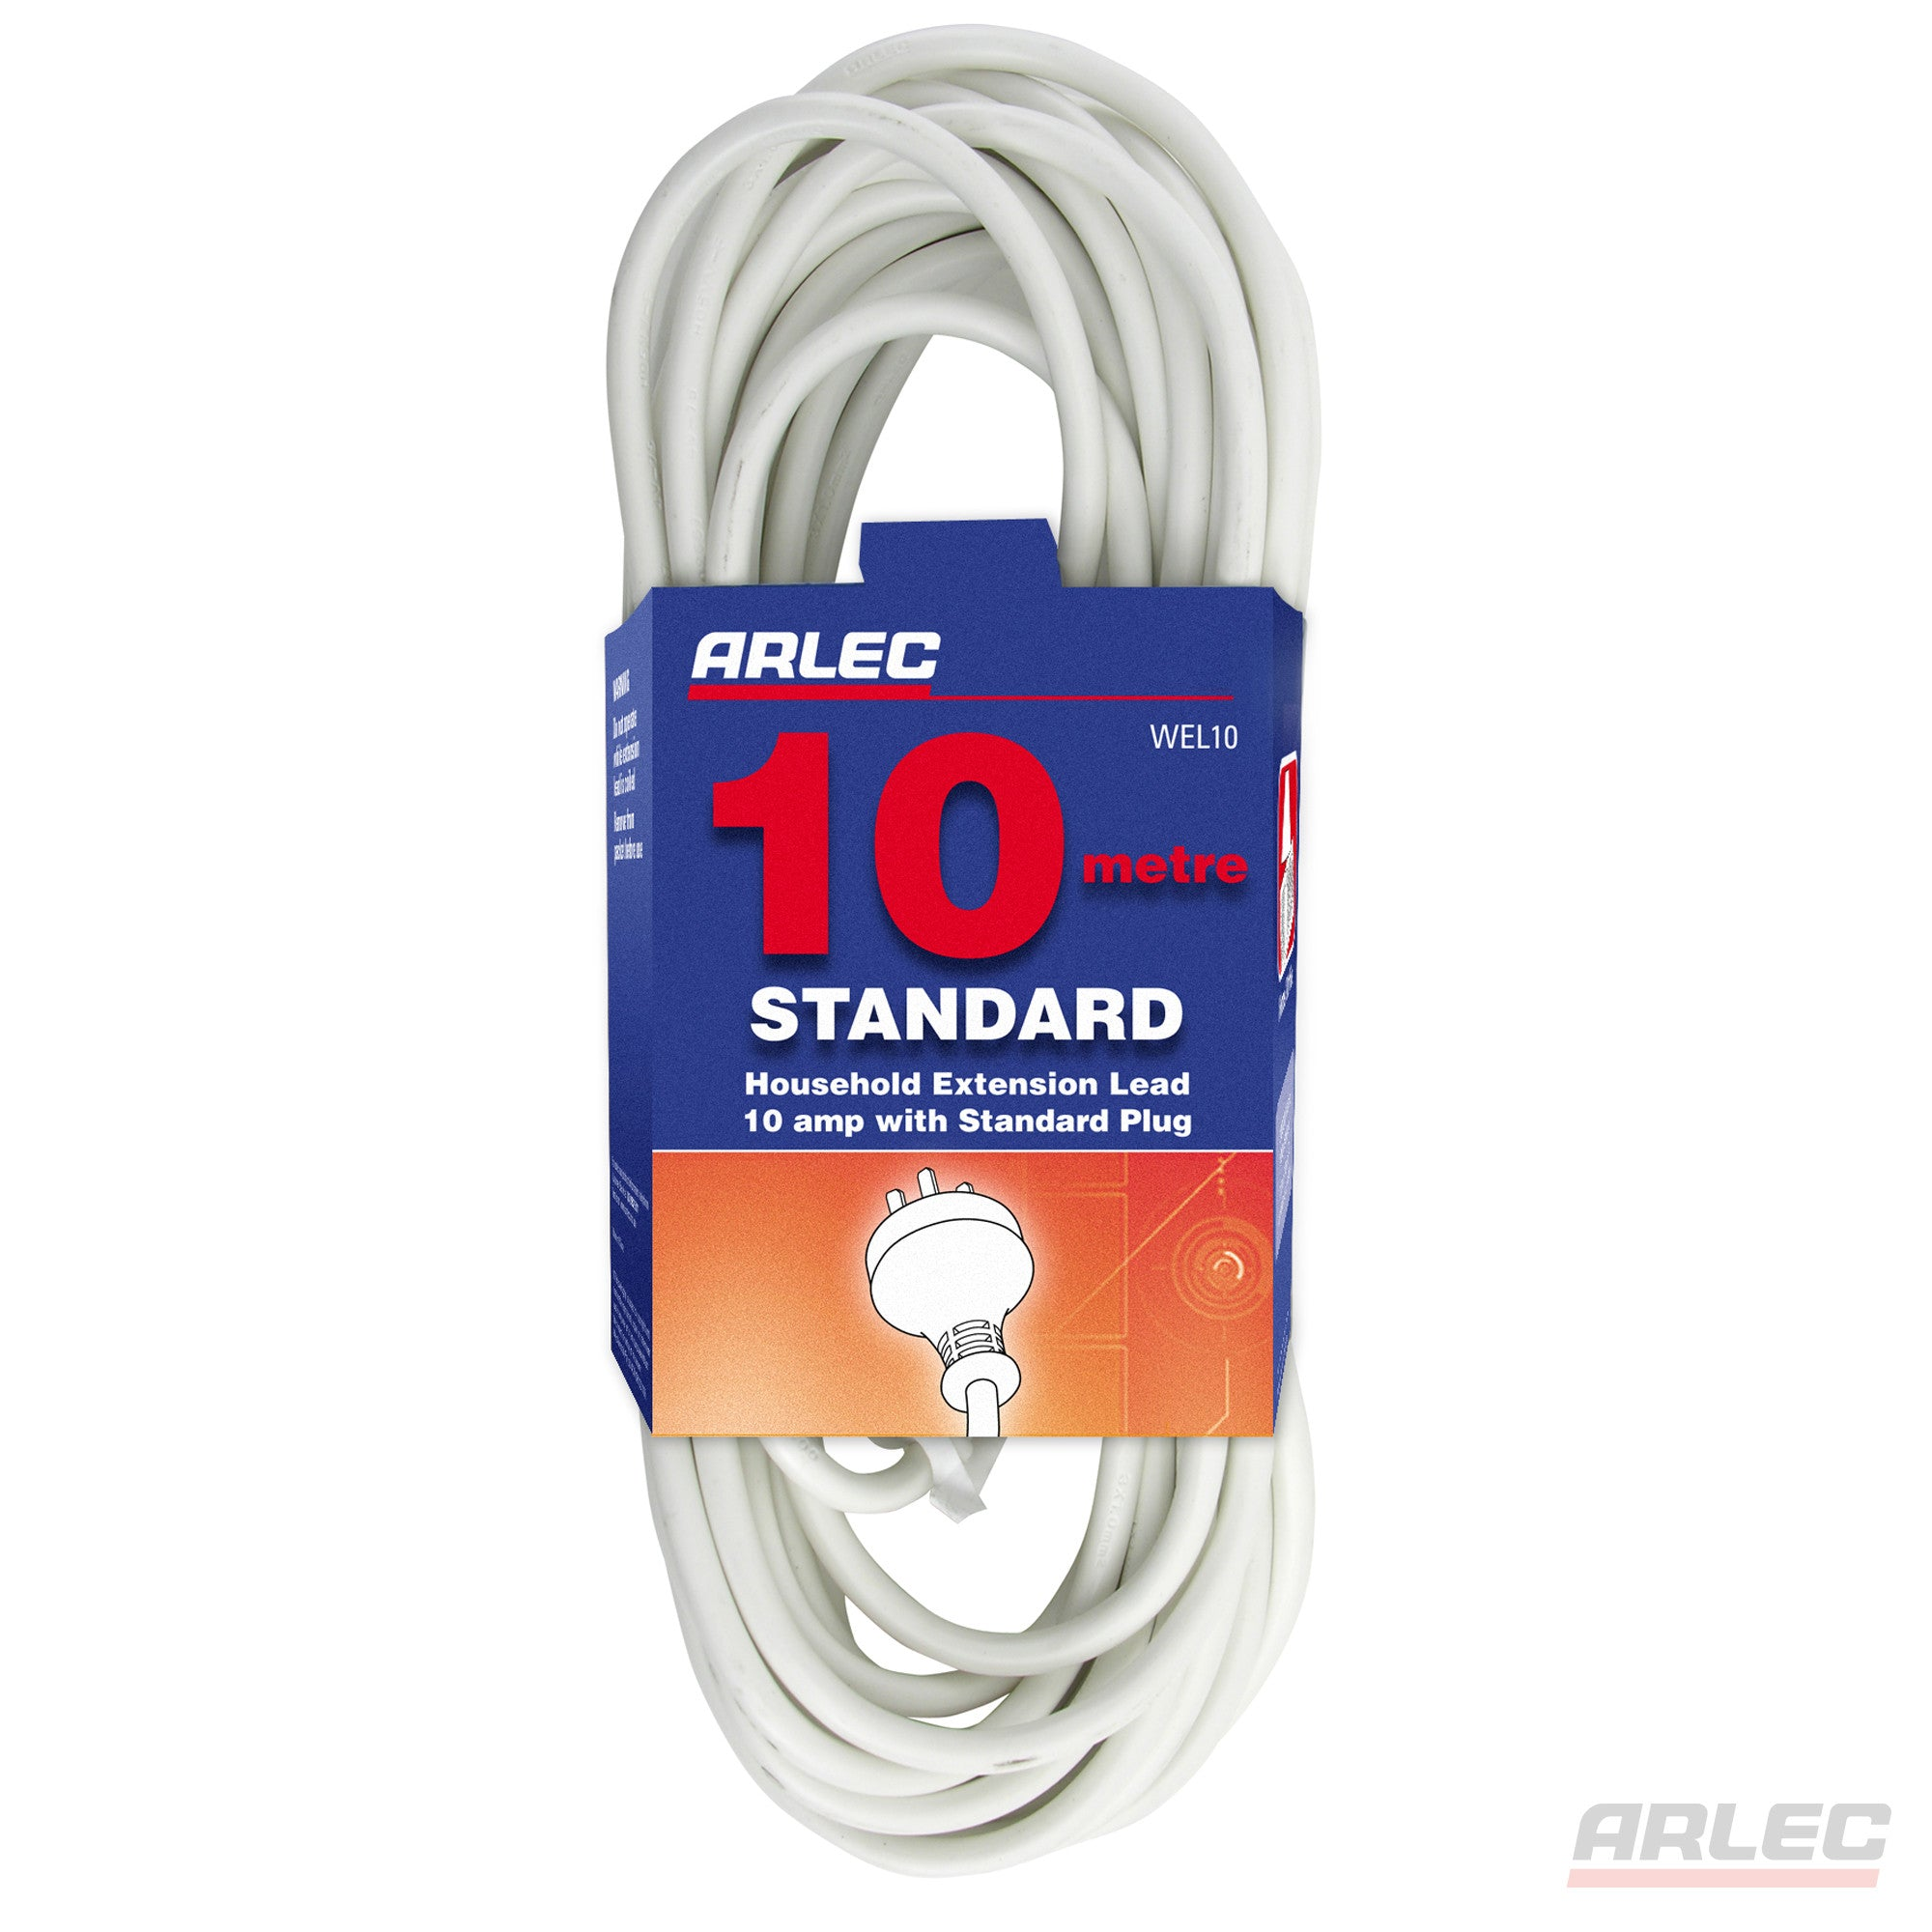 Arlec ARLEC 10 Meter Domestic Extension Lead - WEL10 - BNR Industrial